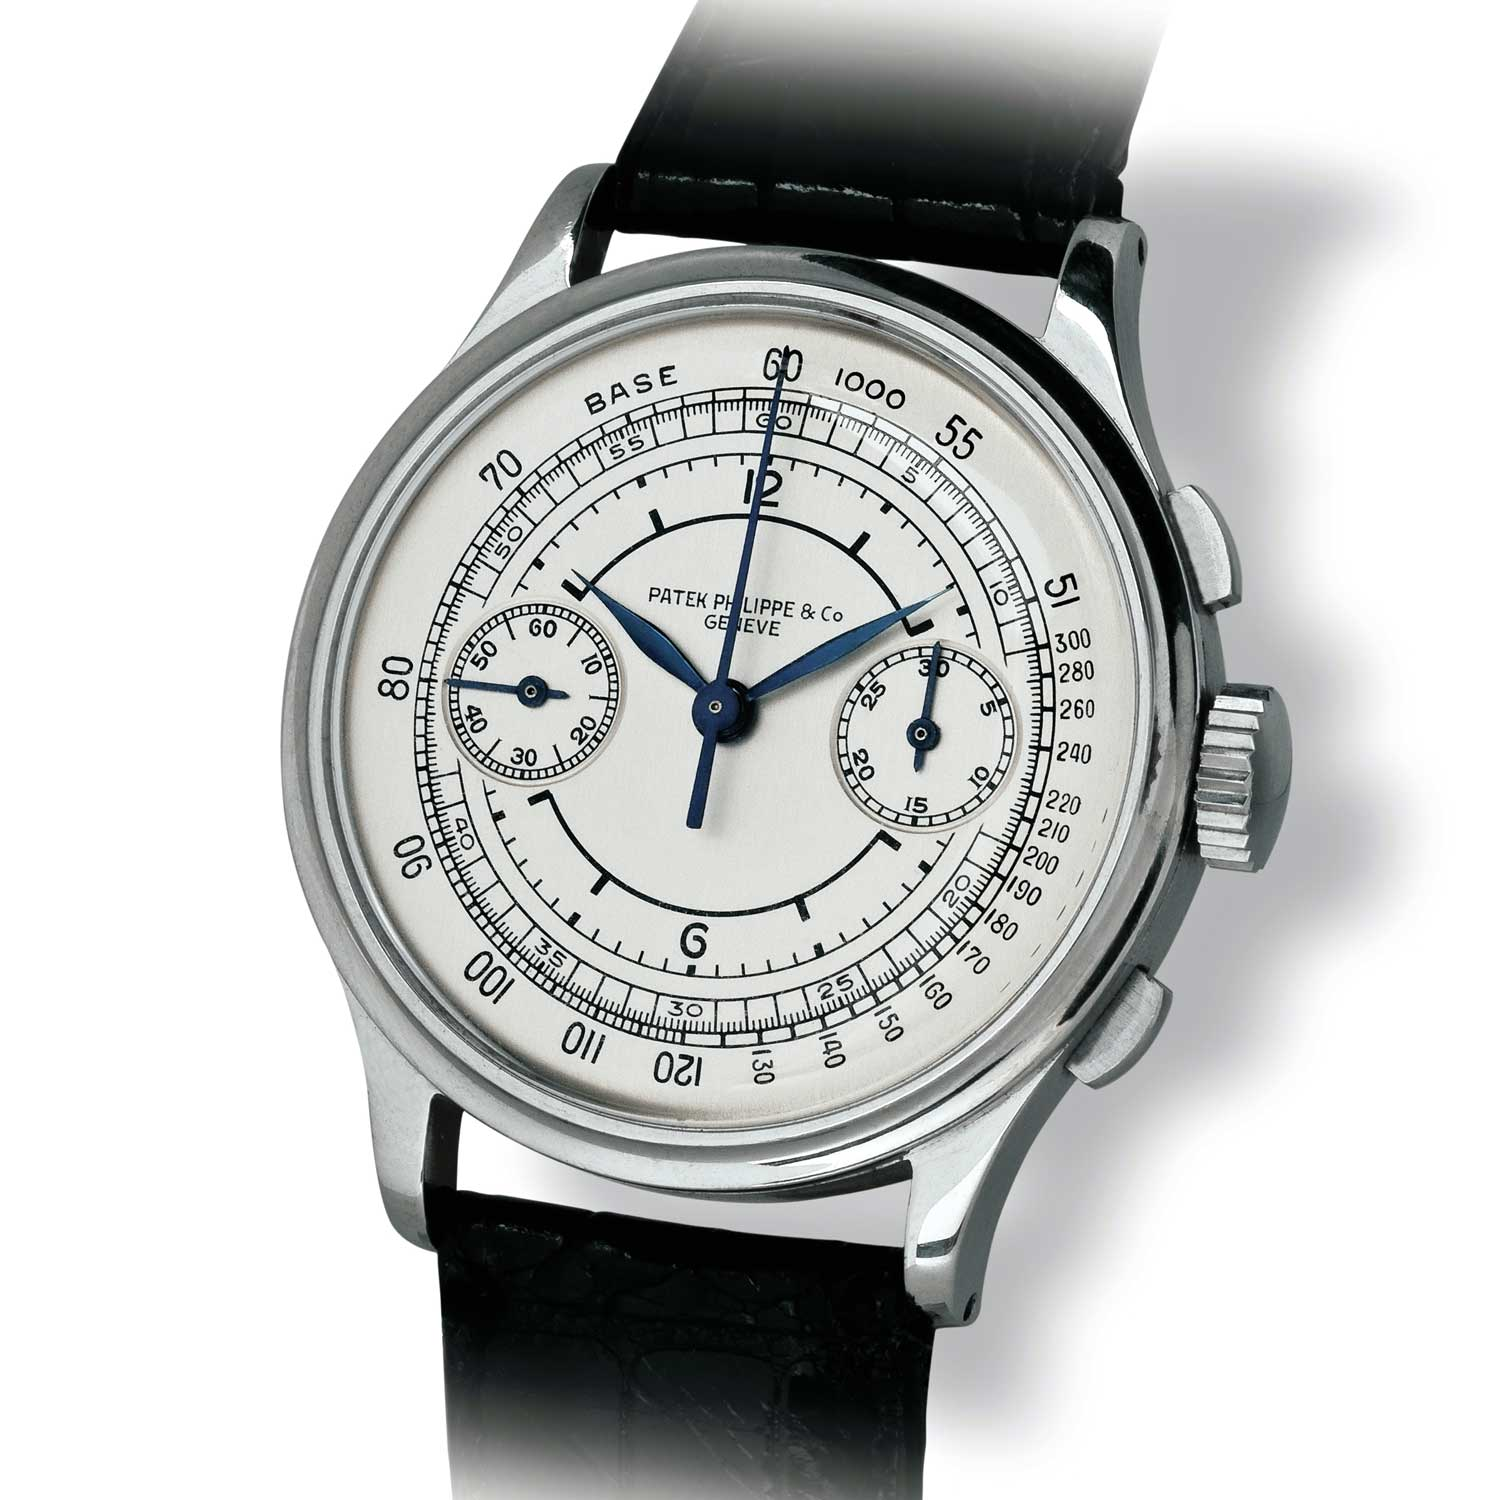 Patek Philippe ref. 530 steel chronograph with sector dial (Image: John Goldberger)